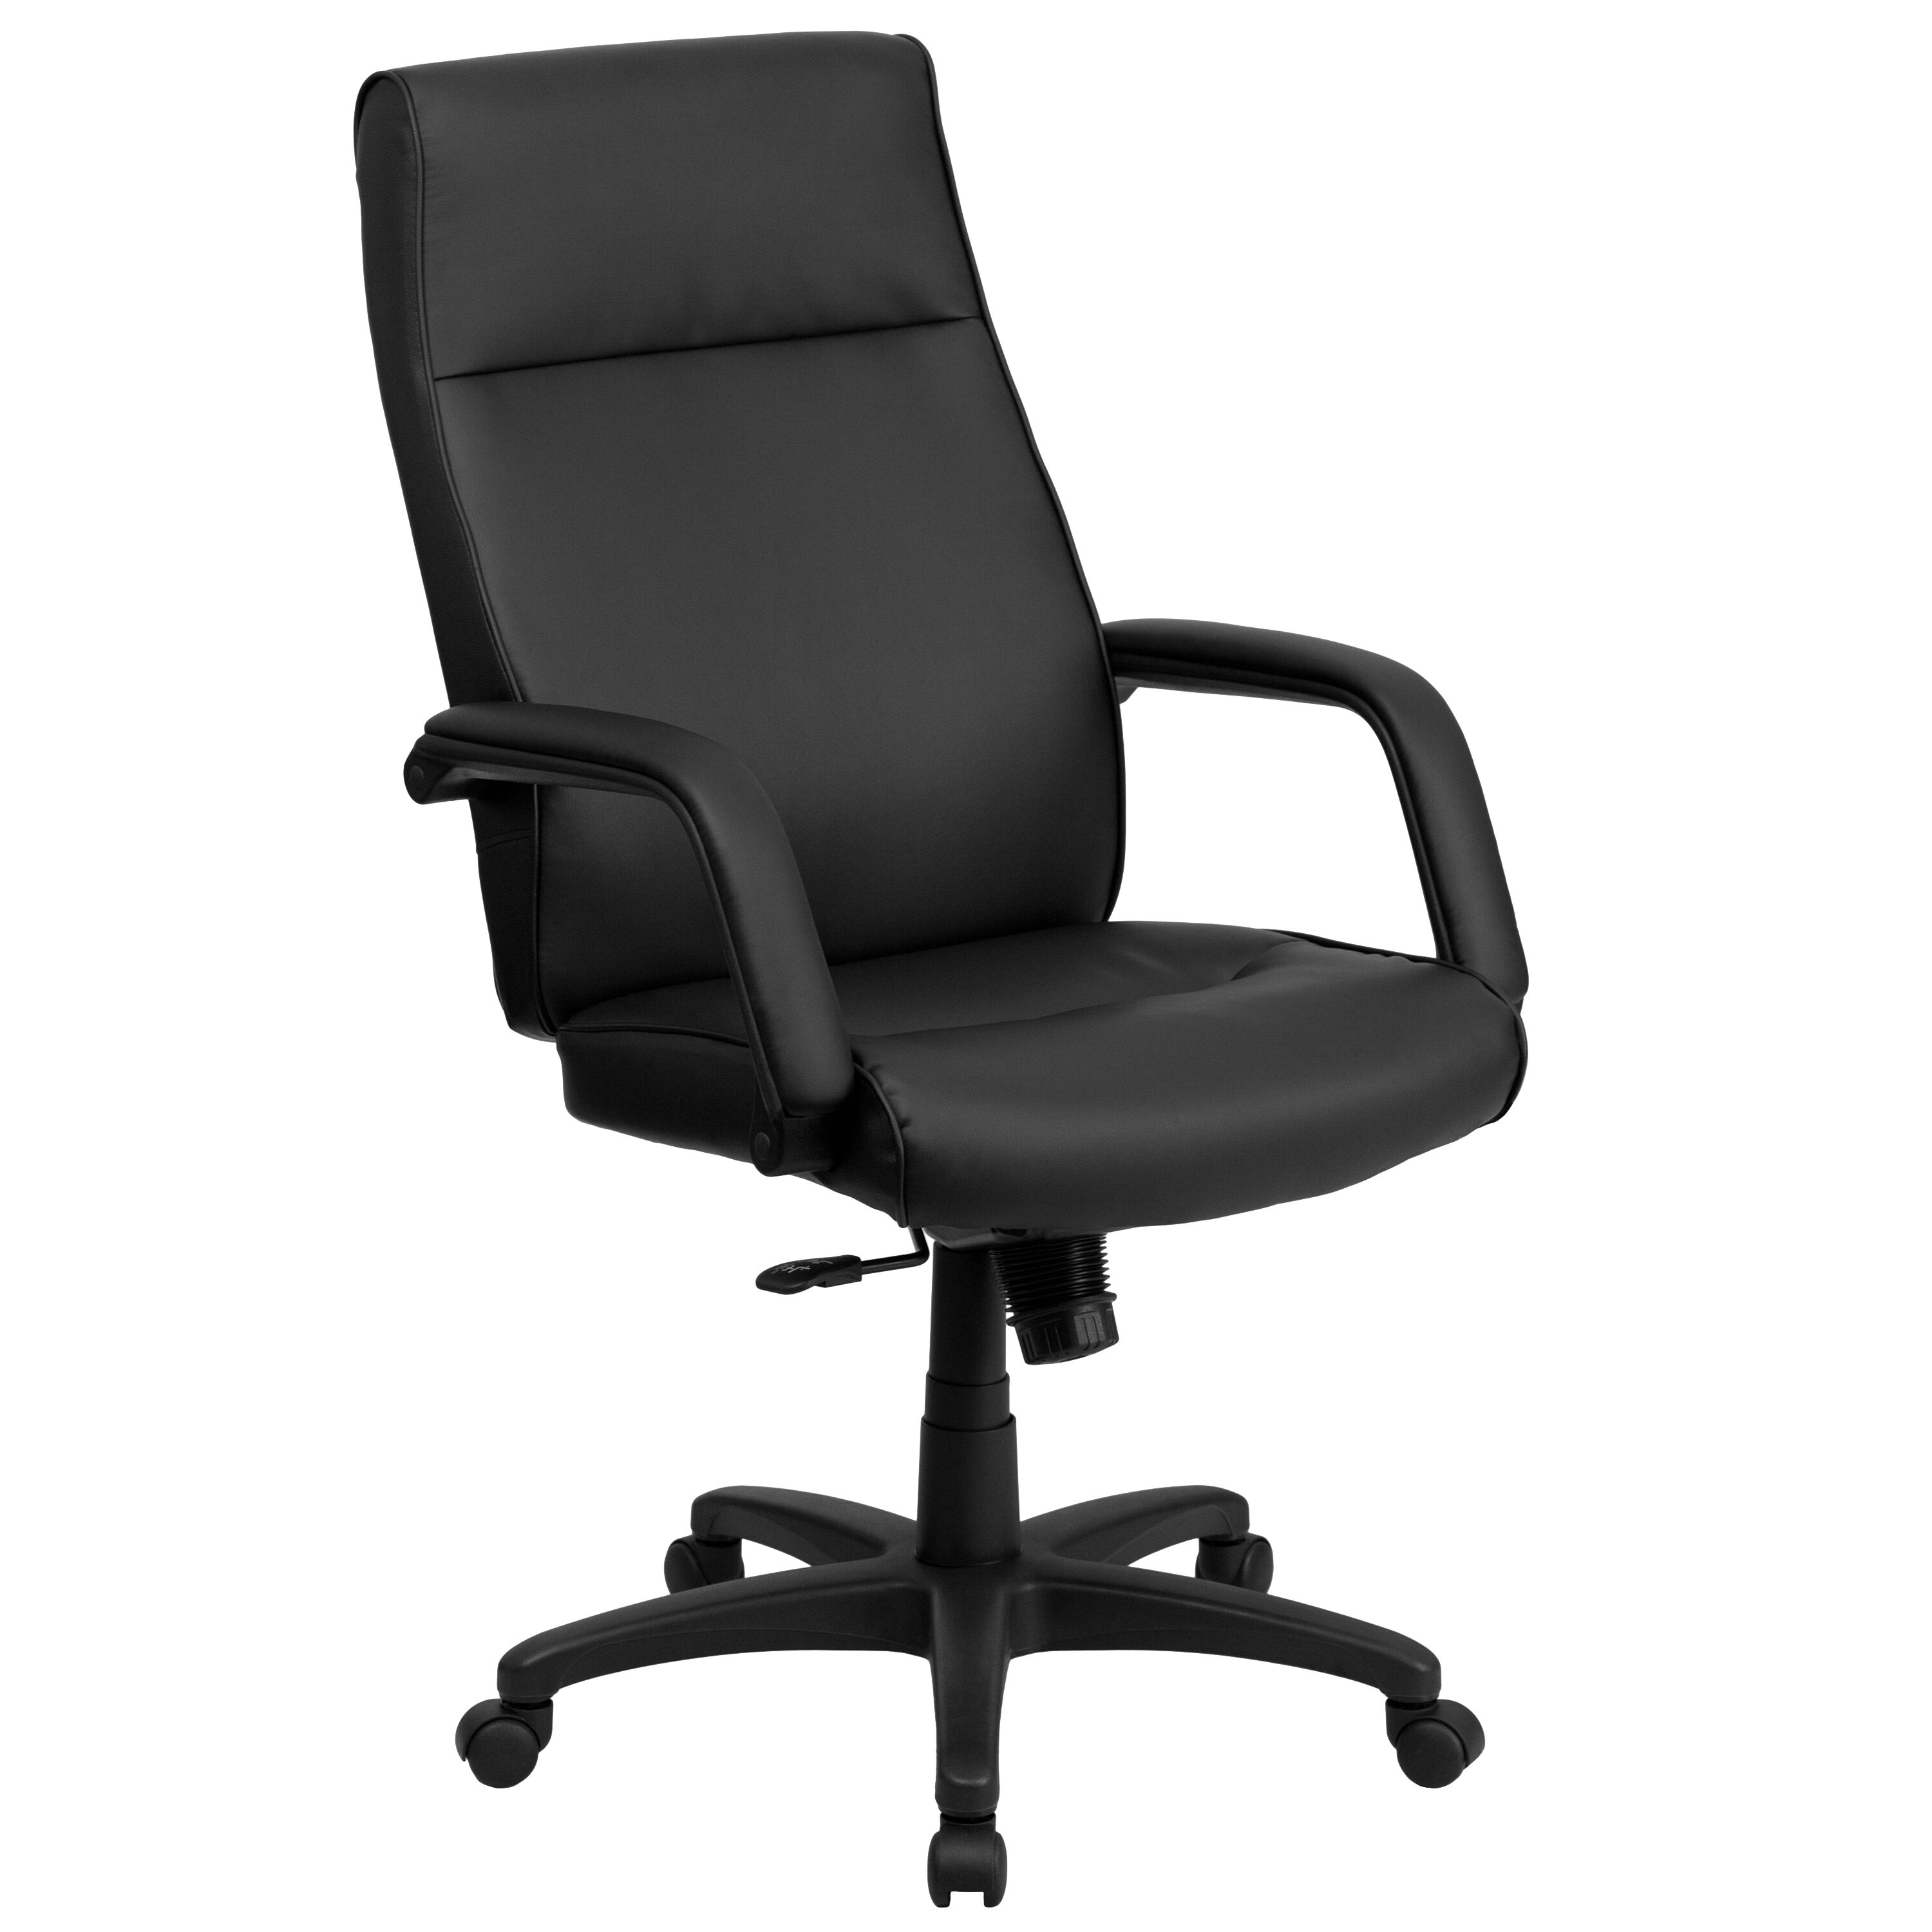 Our High Back Black Leather Executive Swivel Chair With Memory Foam Padding  And Arms Is On